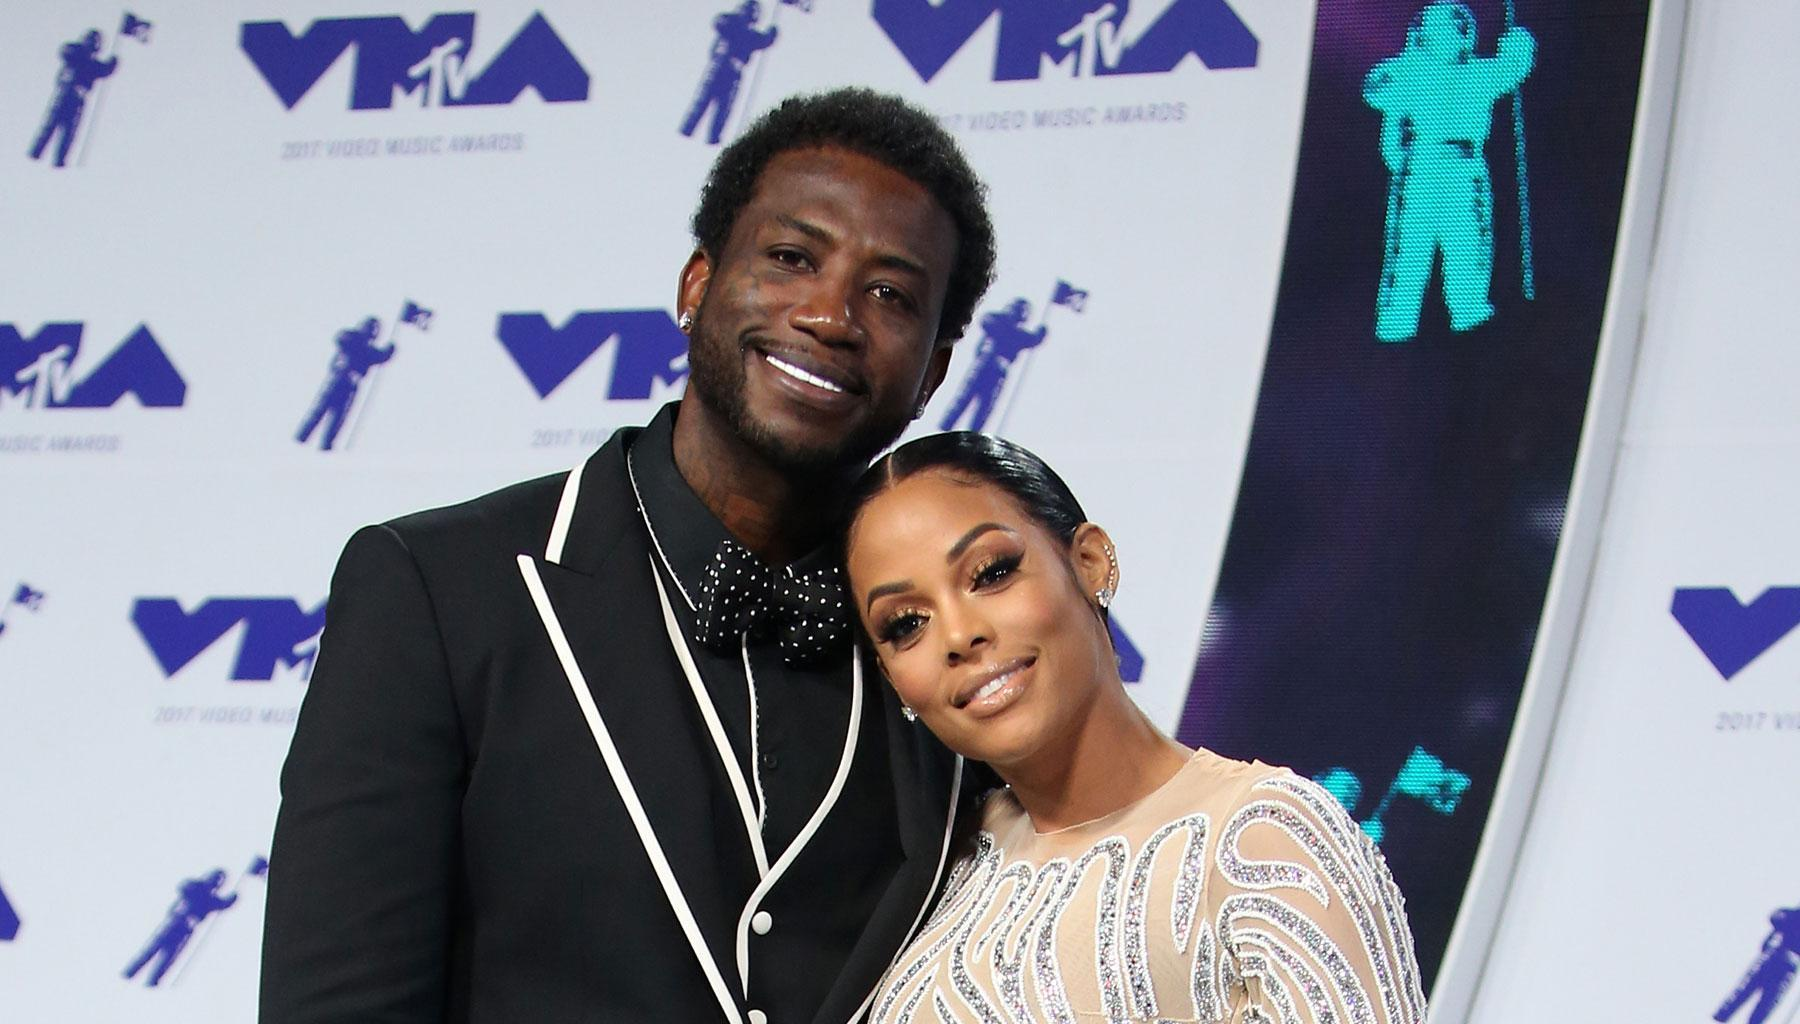 Gucci Mane Wears A Traditional Dress While On Vacation In New Video -- His Wife, Keyshia Ka'oir, Had The Best Reaction